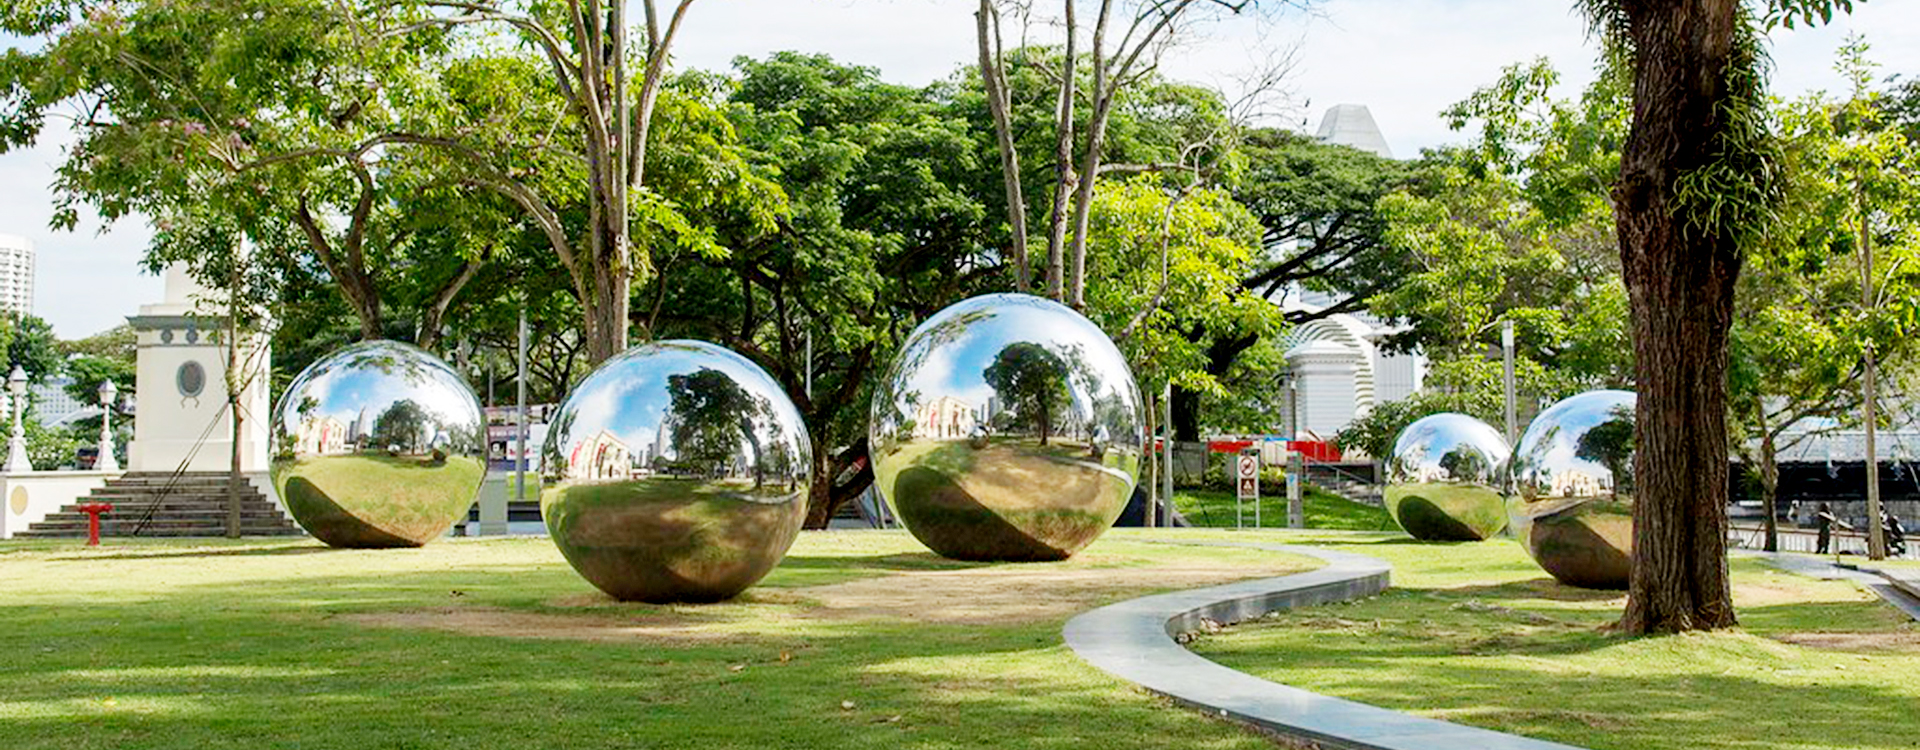 Merveilleux All Our Stainless Steel Sculptures And Stainless Steel Spheres Are  Handmade. Usually Used For Outdoor And City Decoration. It Can Also Be  Placed In A Garden ...